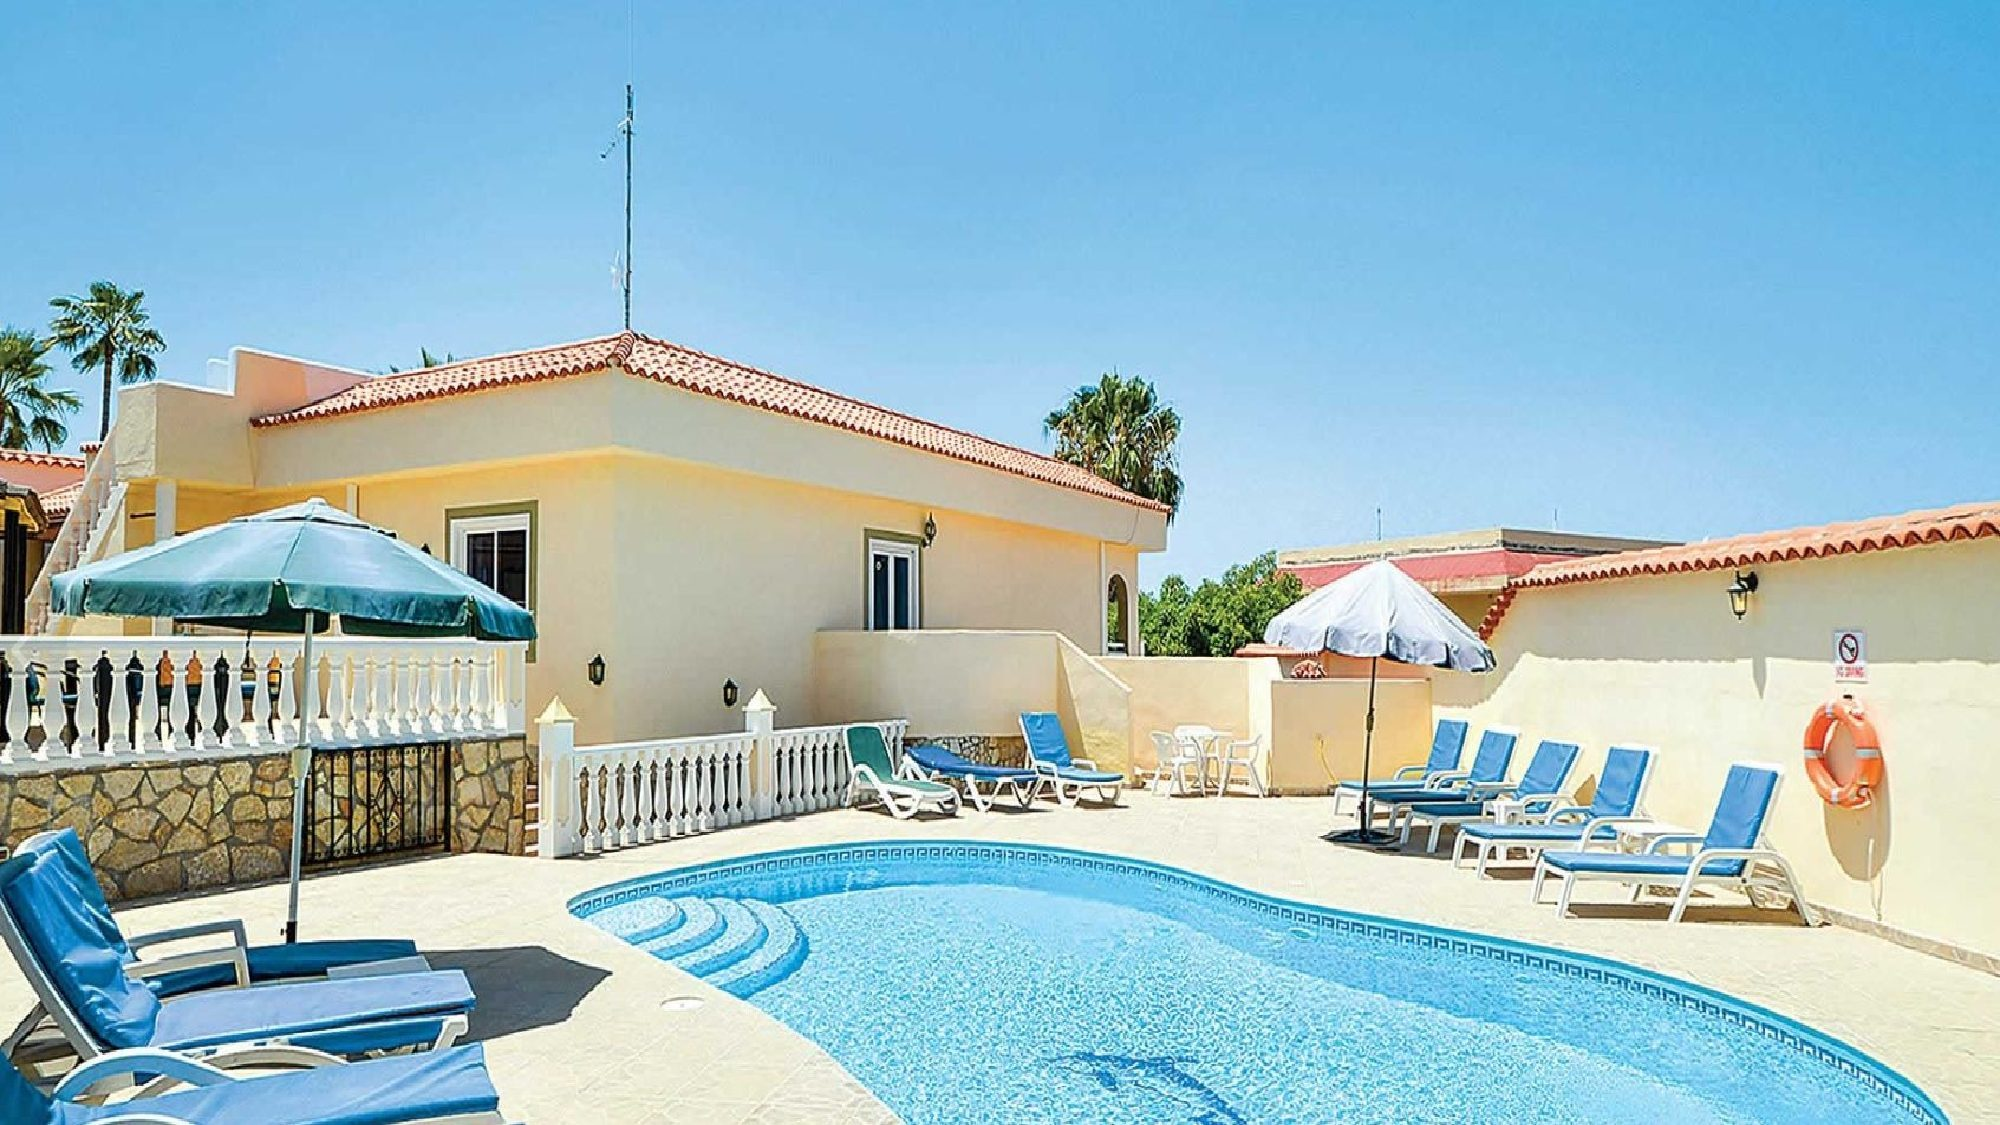 6 bedroom villa in Tenerife to rent | Private heated pool ...